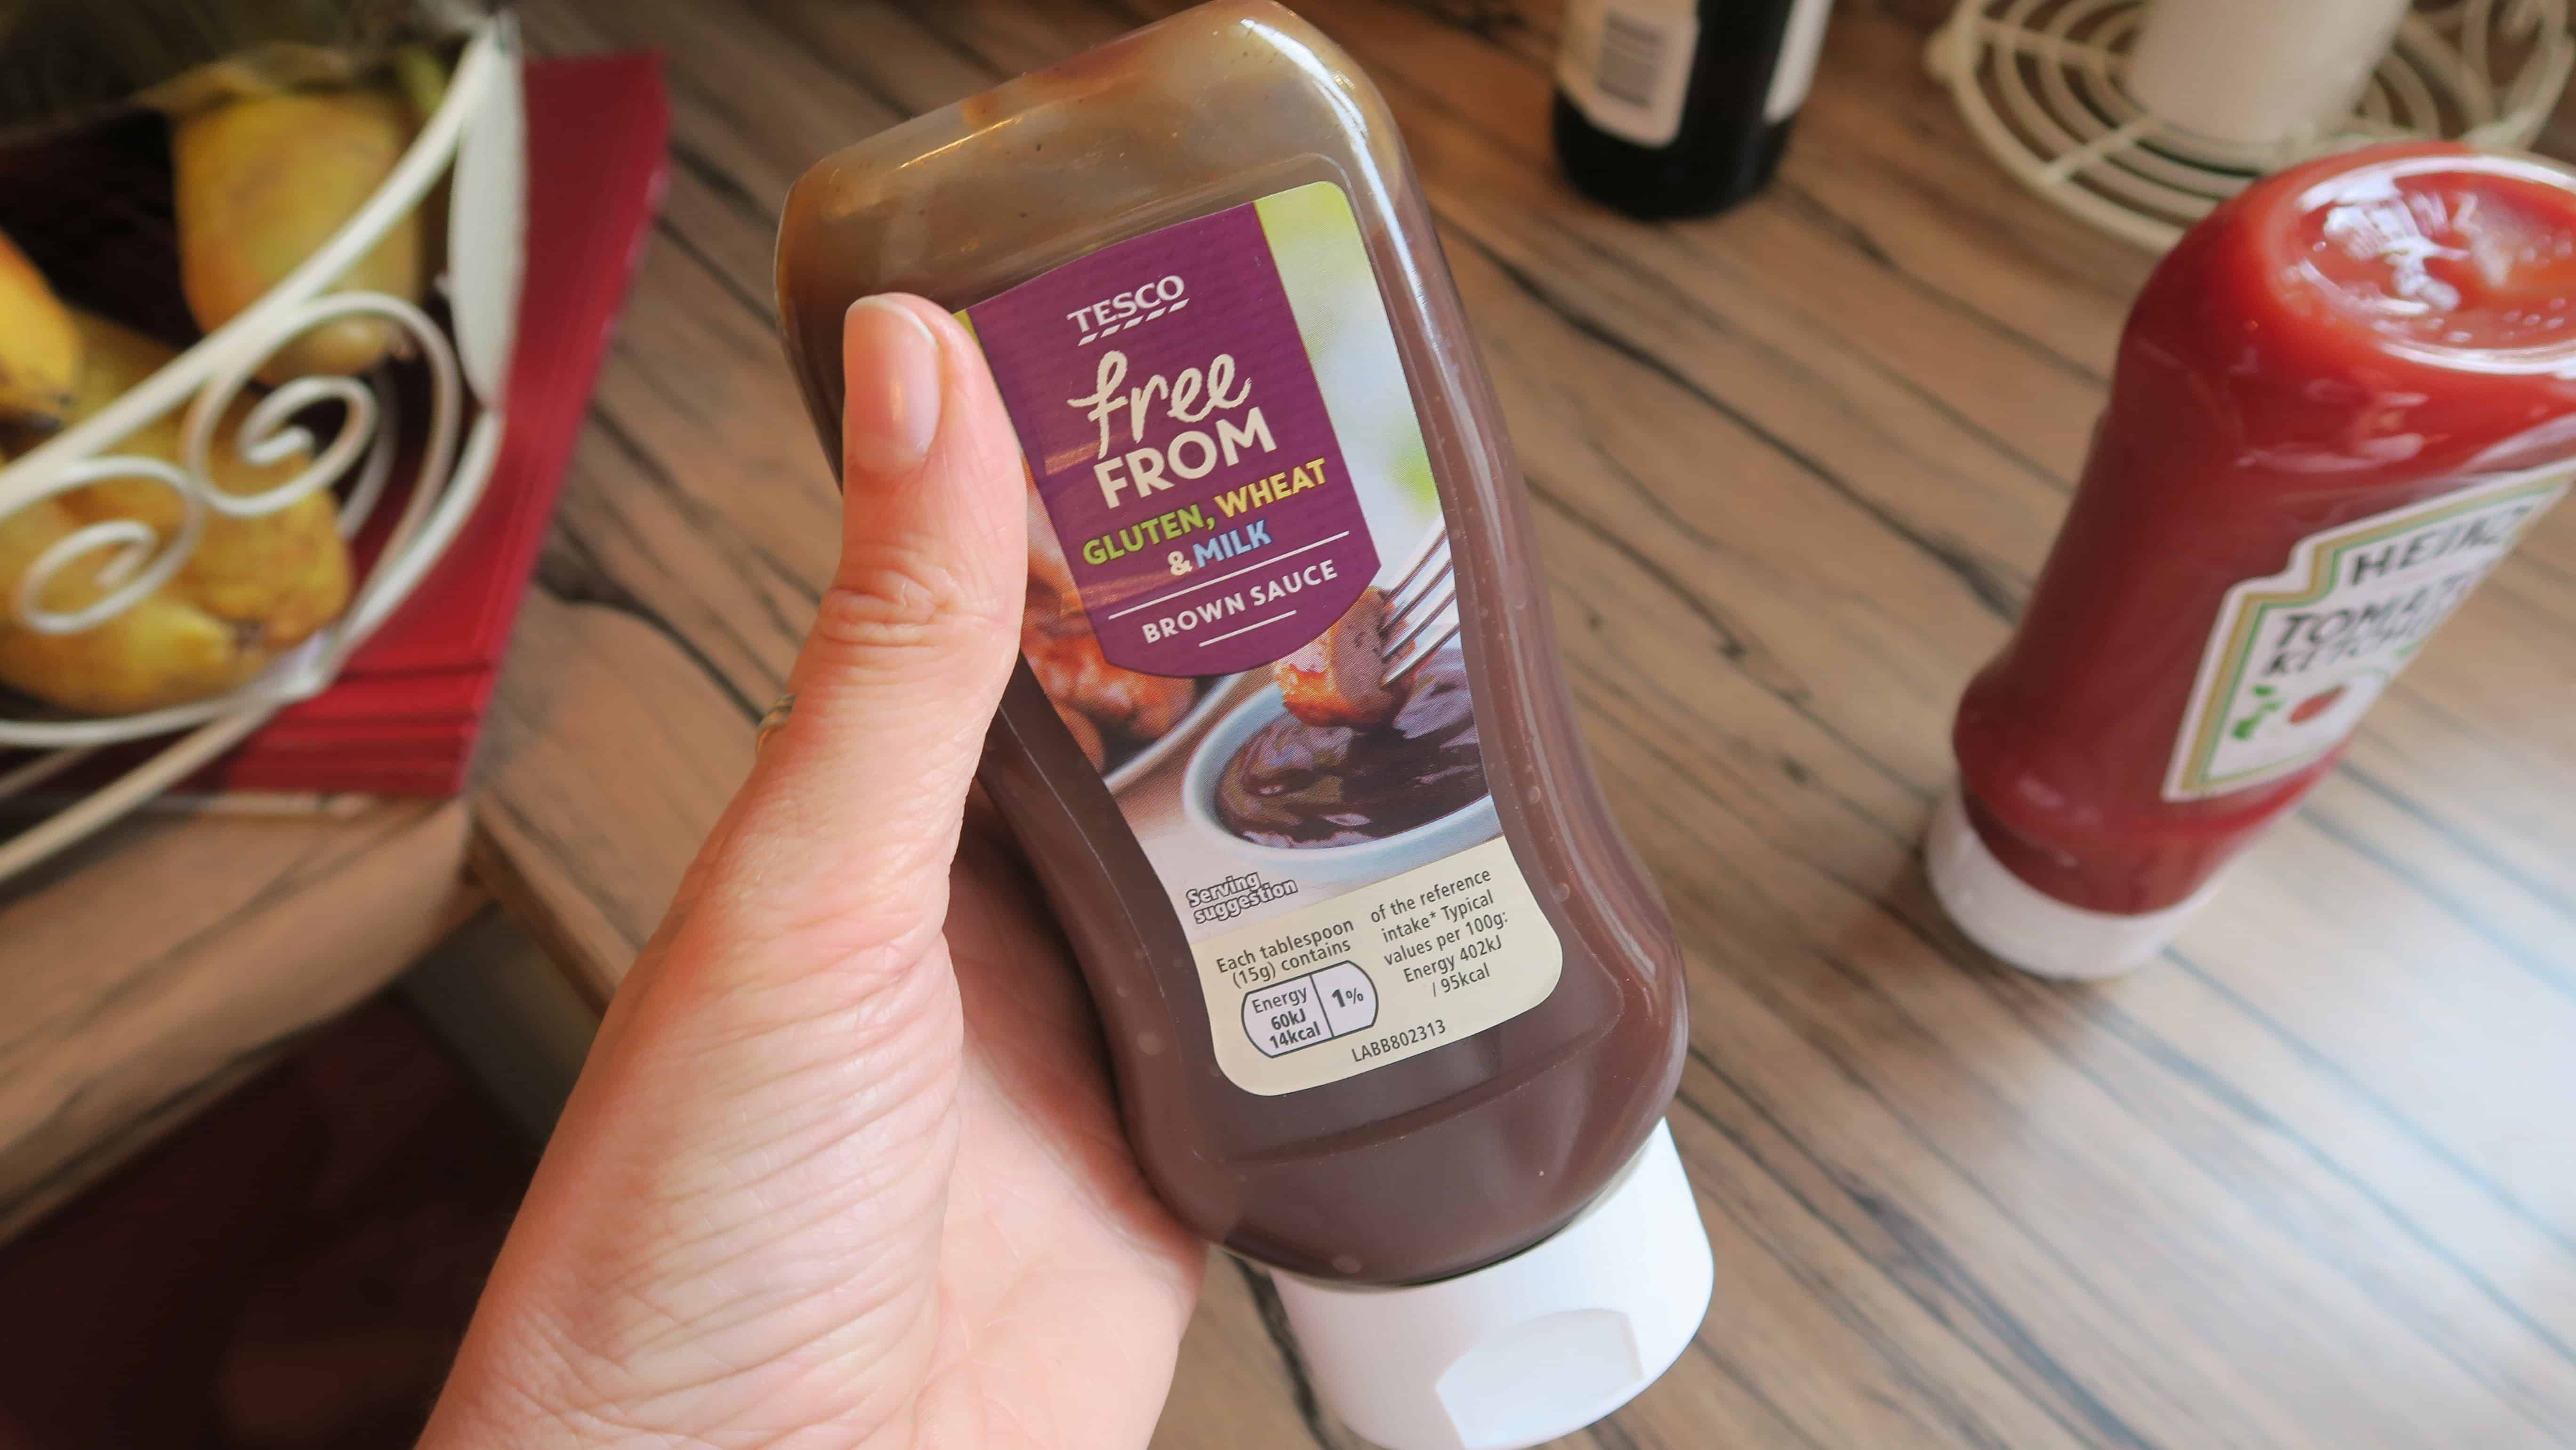 gluten free brown sauce Tesco